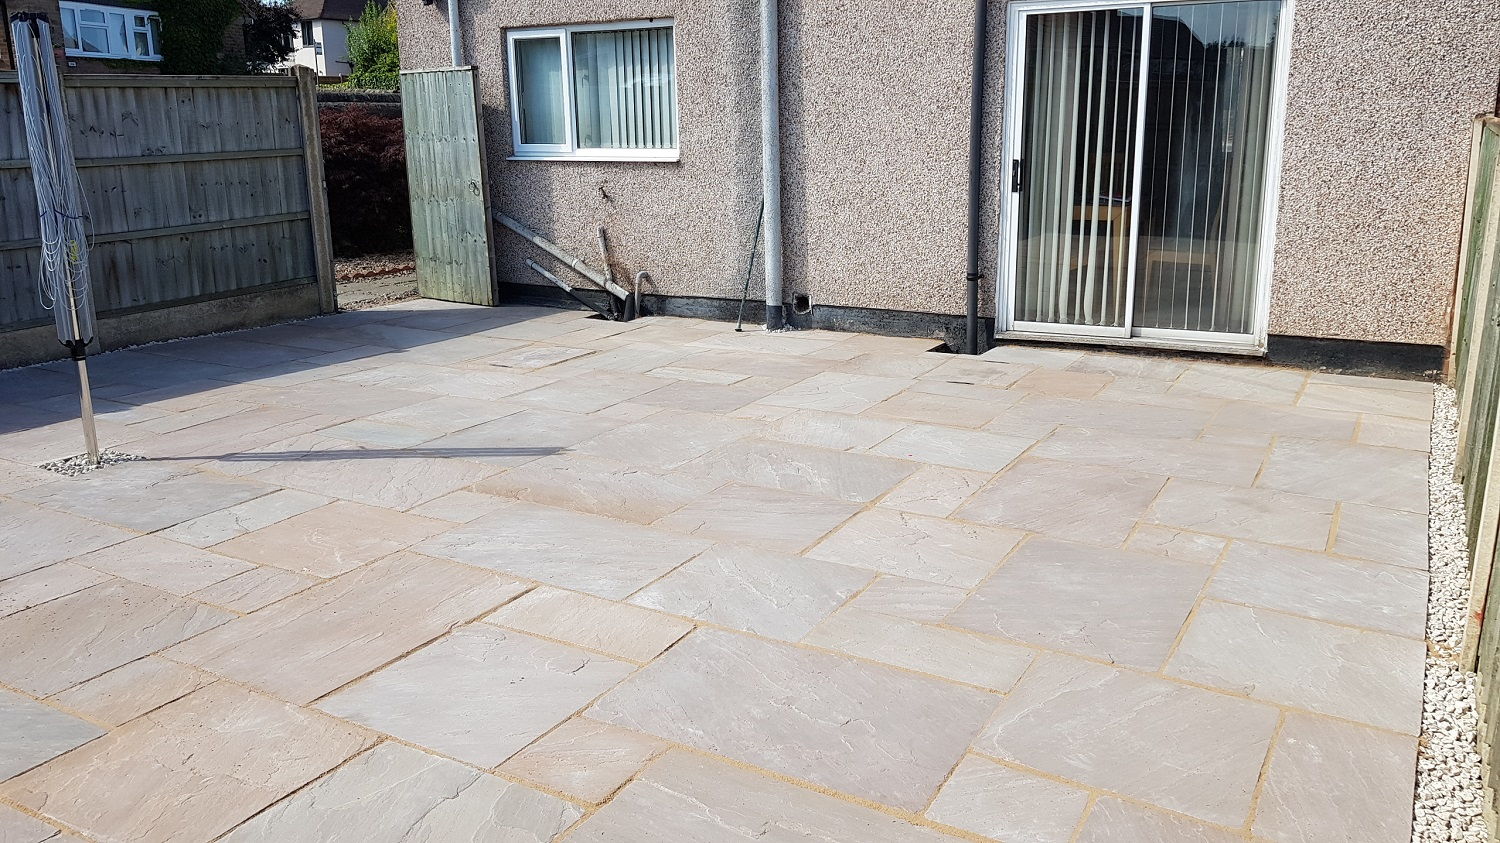 H18 Autumn Brown Indian Sandstone Paving Path at Brookside in Chesterfield